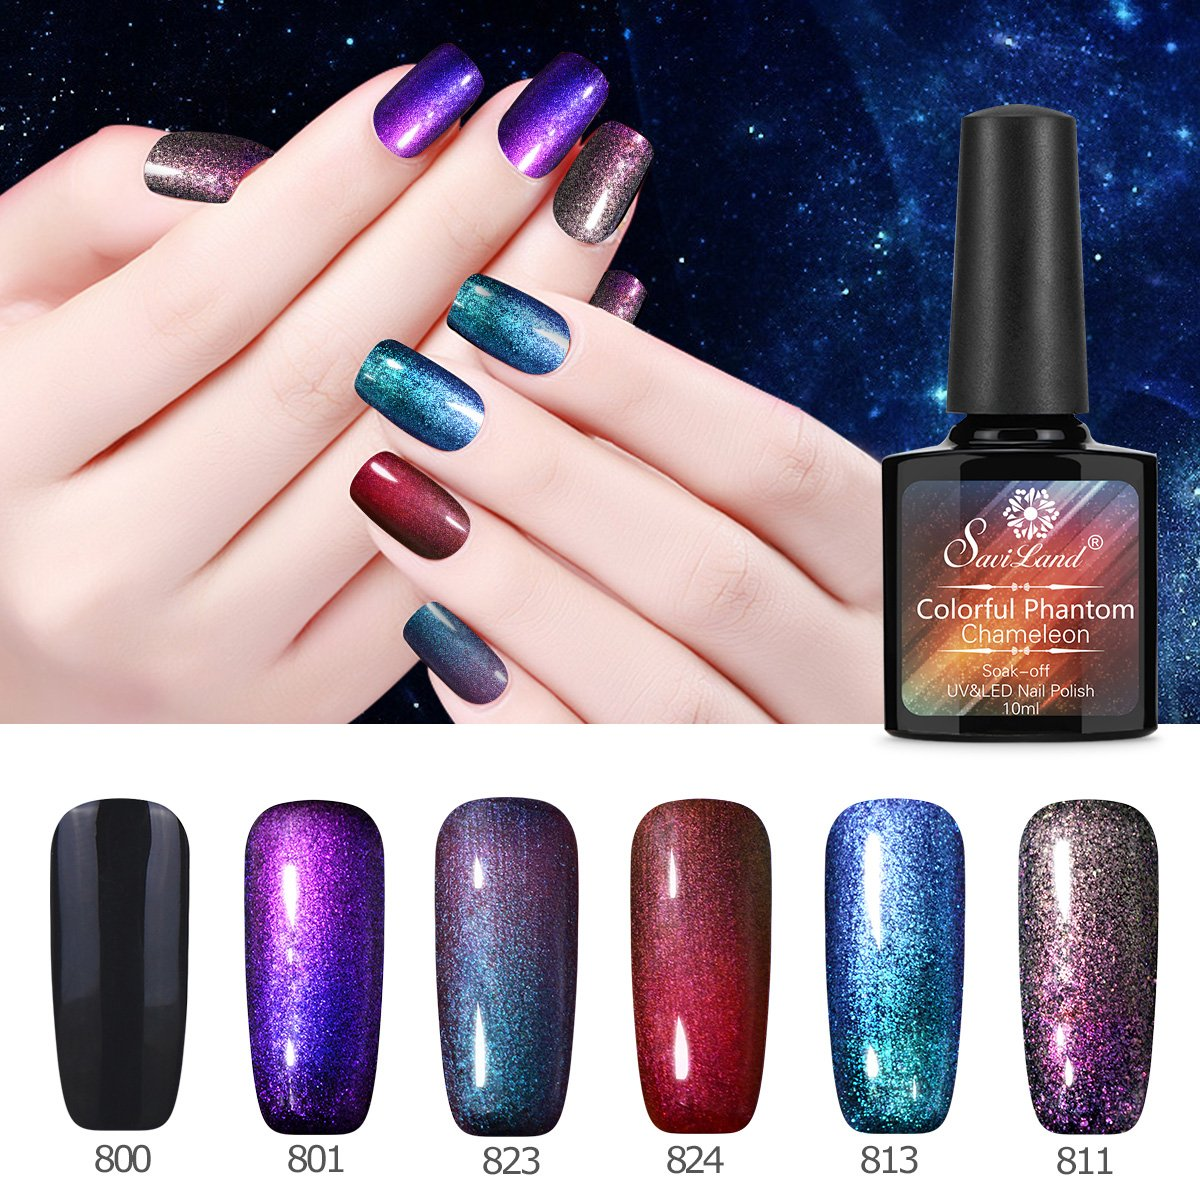 5 Chameleon Gel + Black Polish, Saviland Soak Off UV LED Gel Glitter Sparkly Nail Polish Manicure DIY Nail Art Kit 10ml